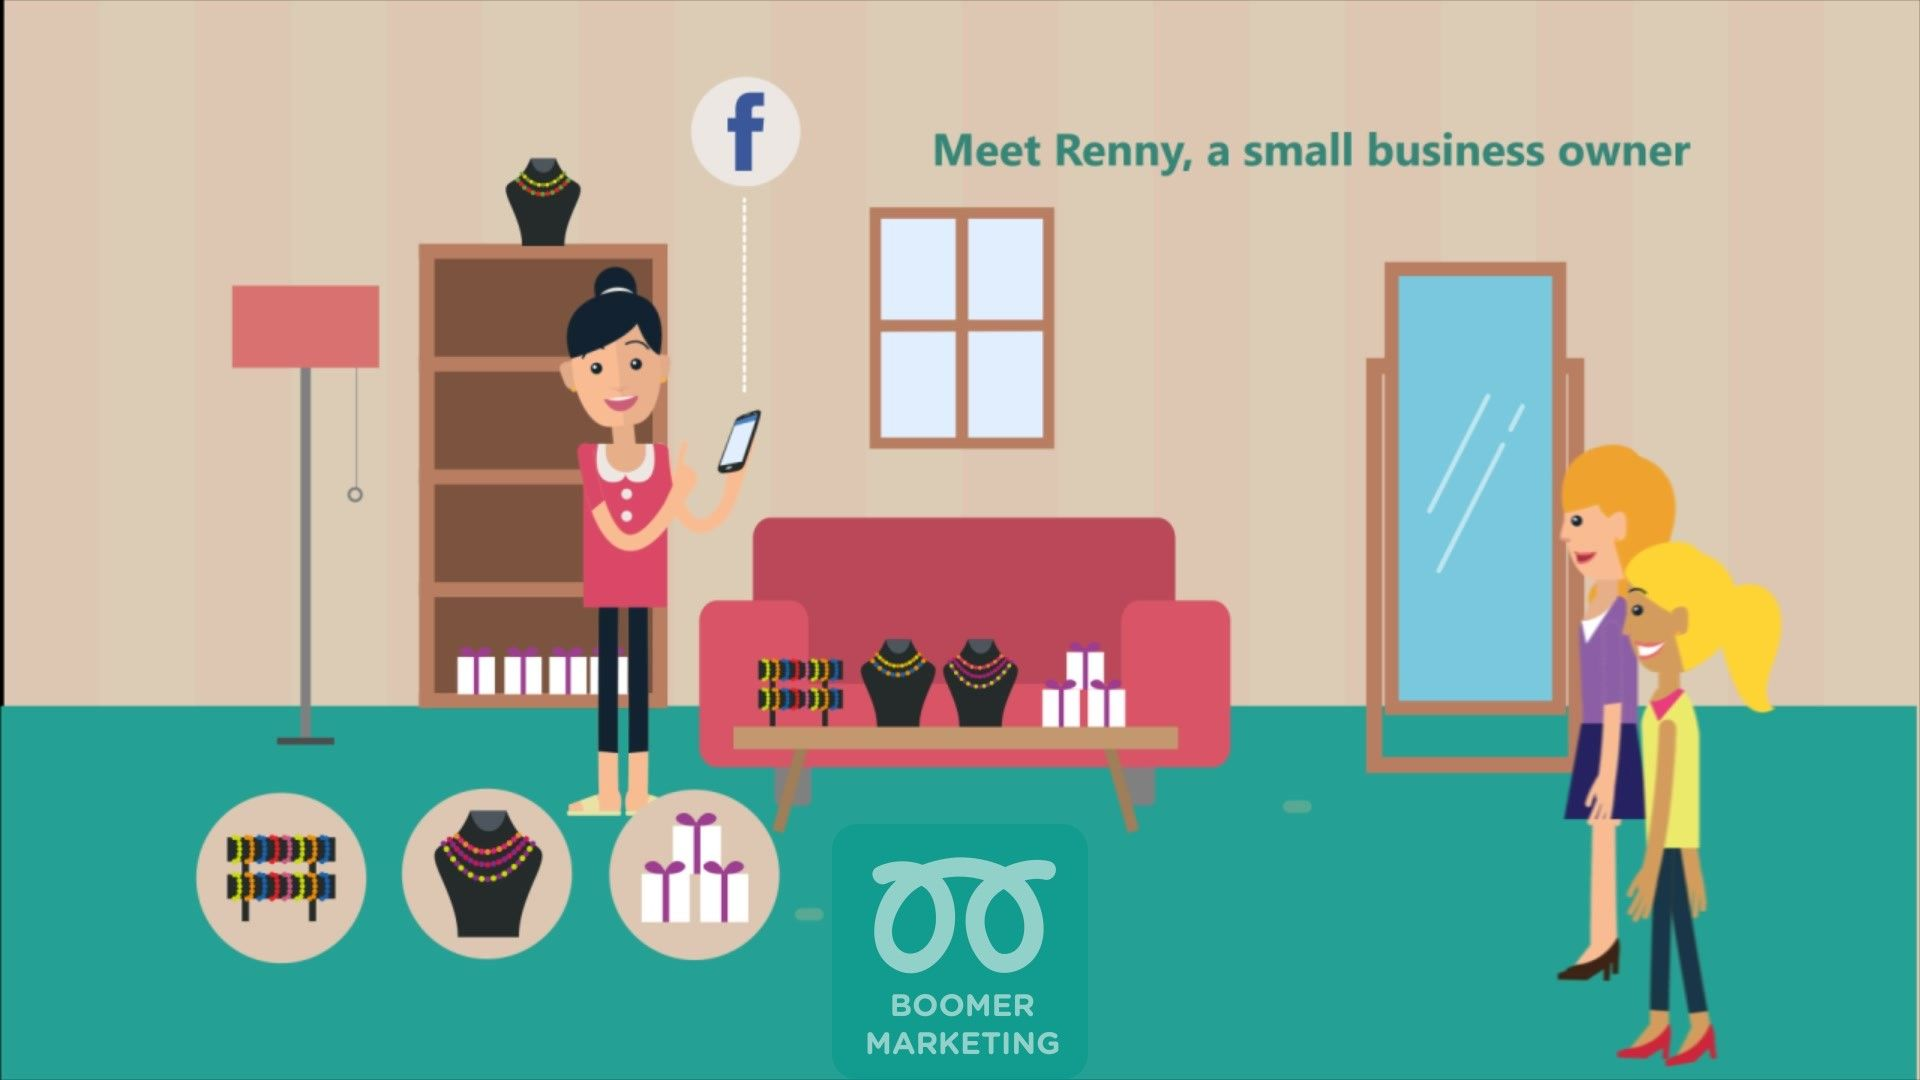 Boomer marketing app free website live chat with your customers